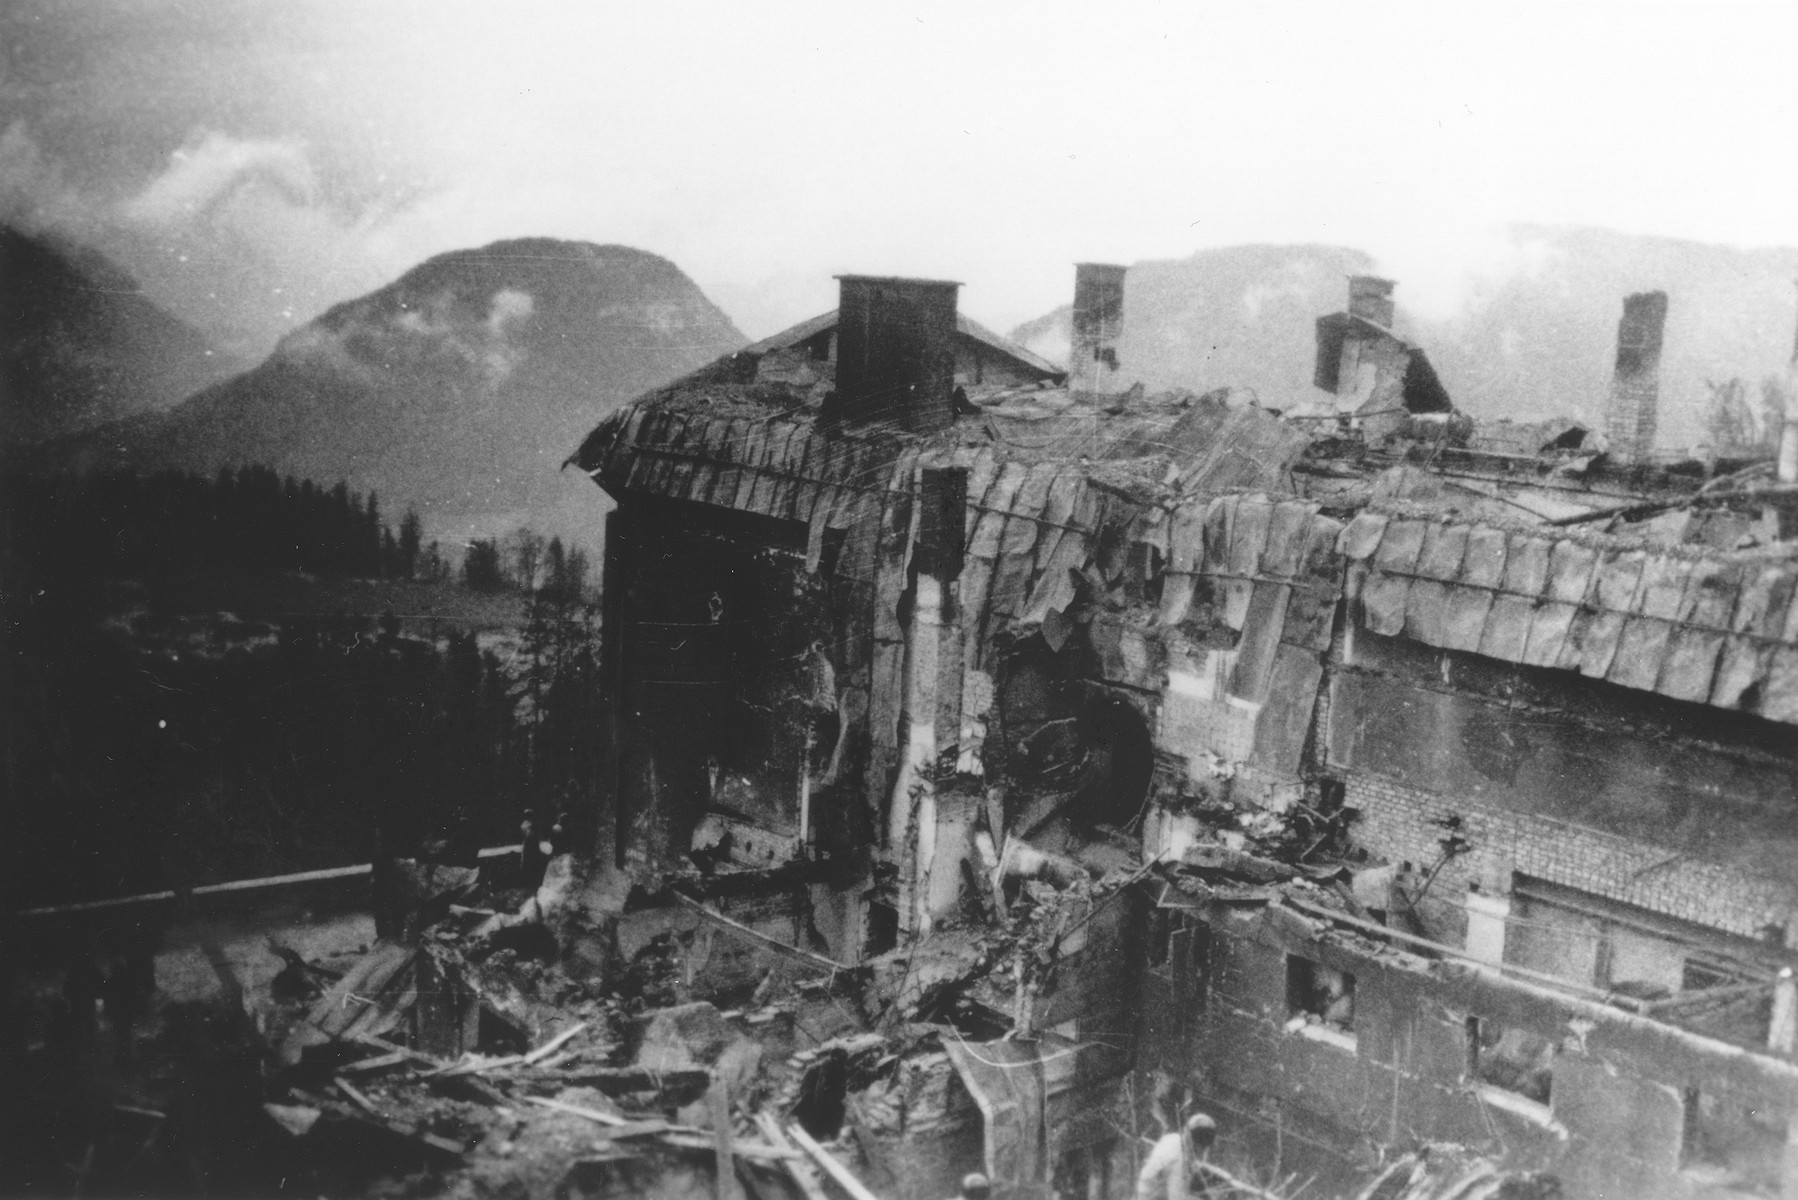 The ruins of the Berghof, Hitler's mountain retreat in the Bavarian Alps.